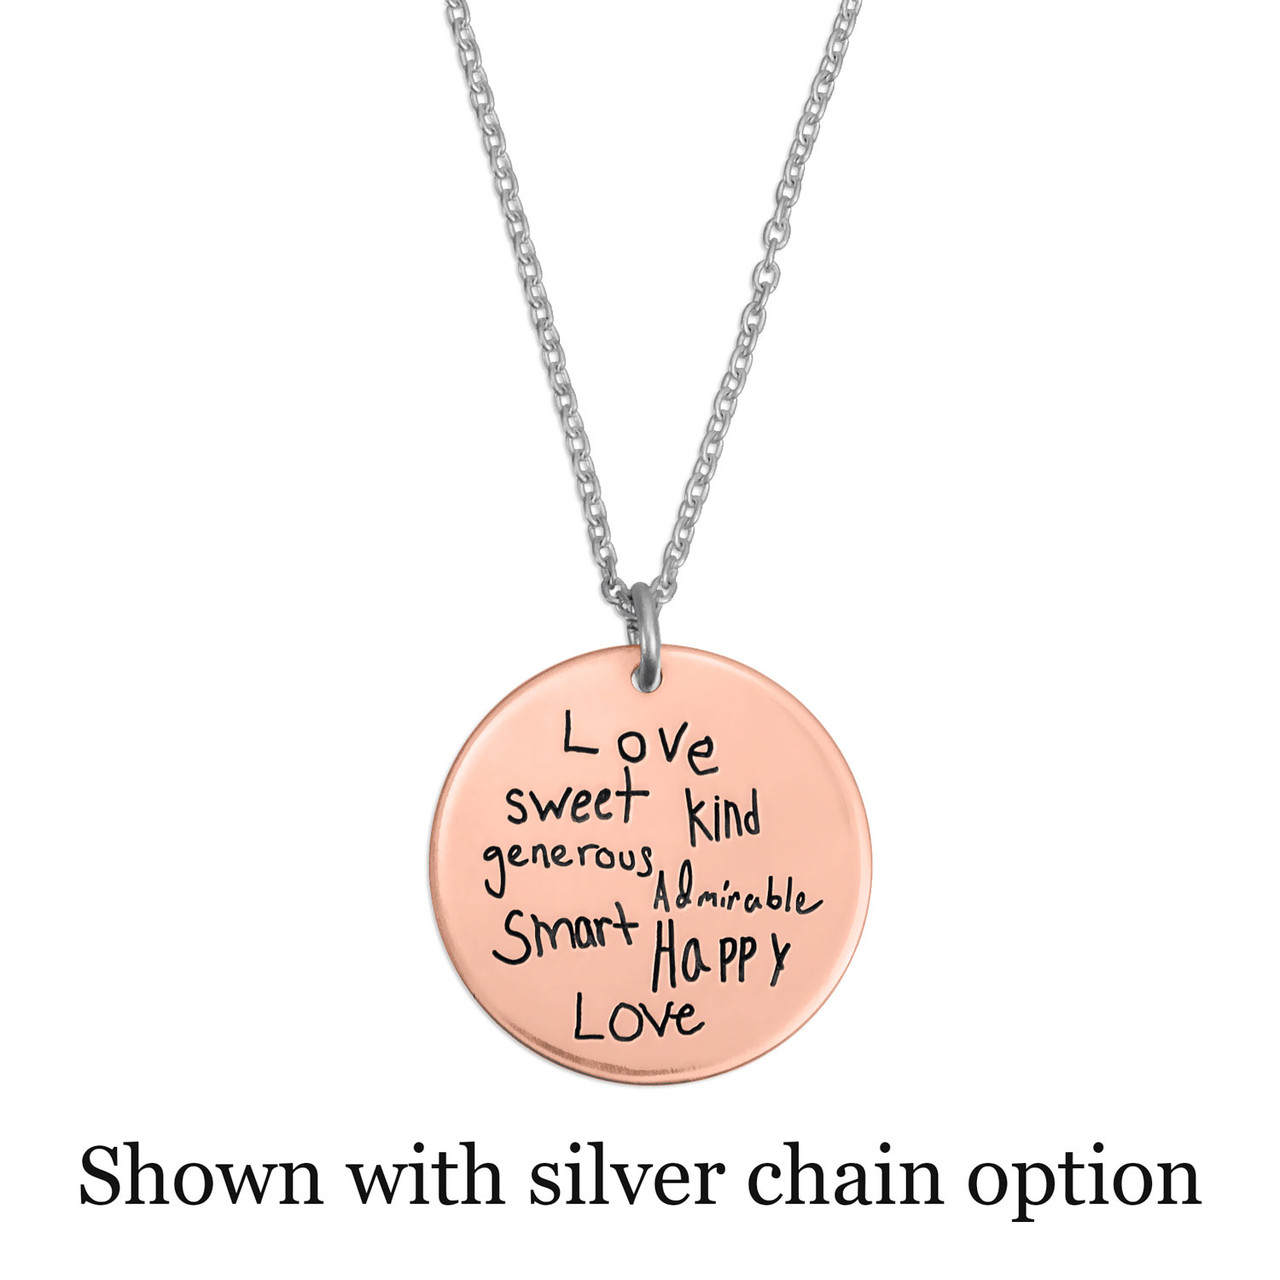 Rose gold disc handwriting necklace, shown with optional silver chain